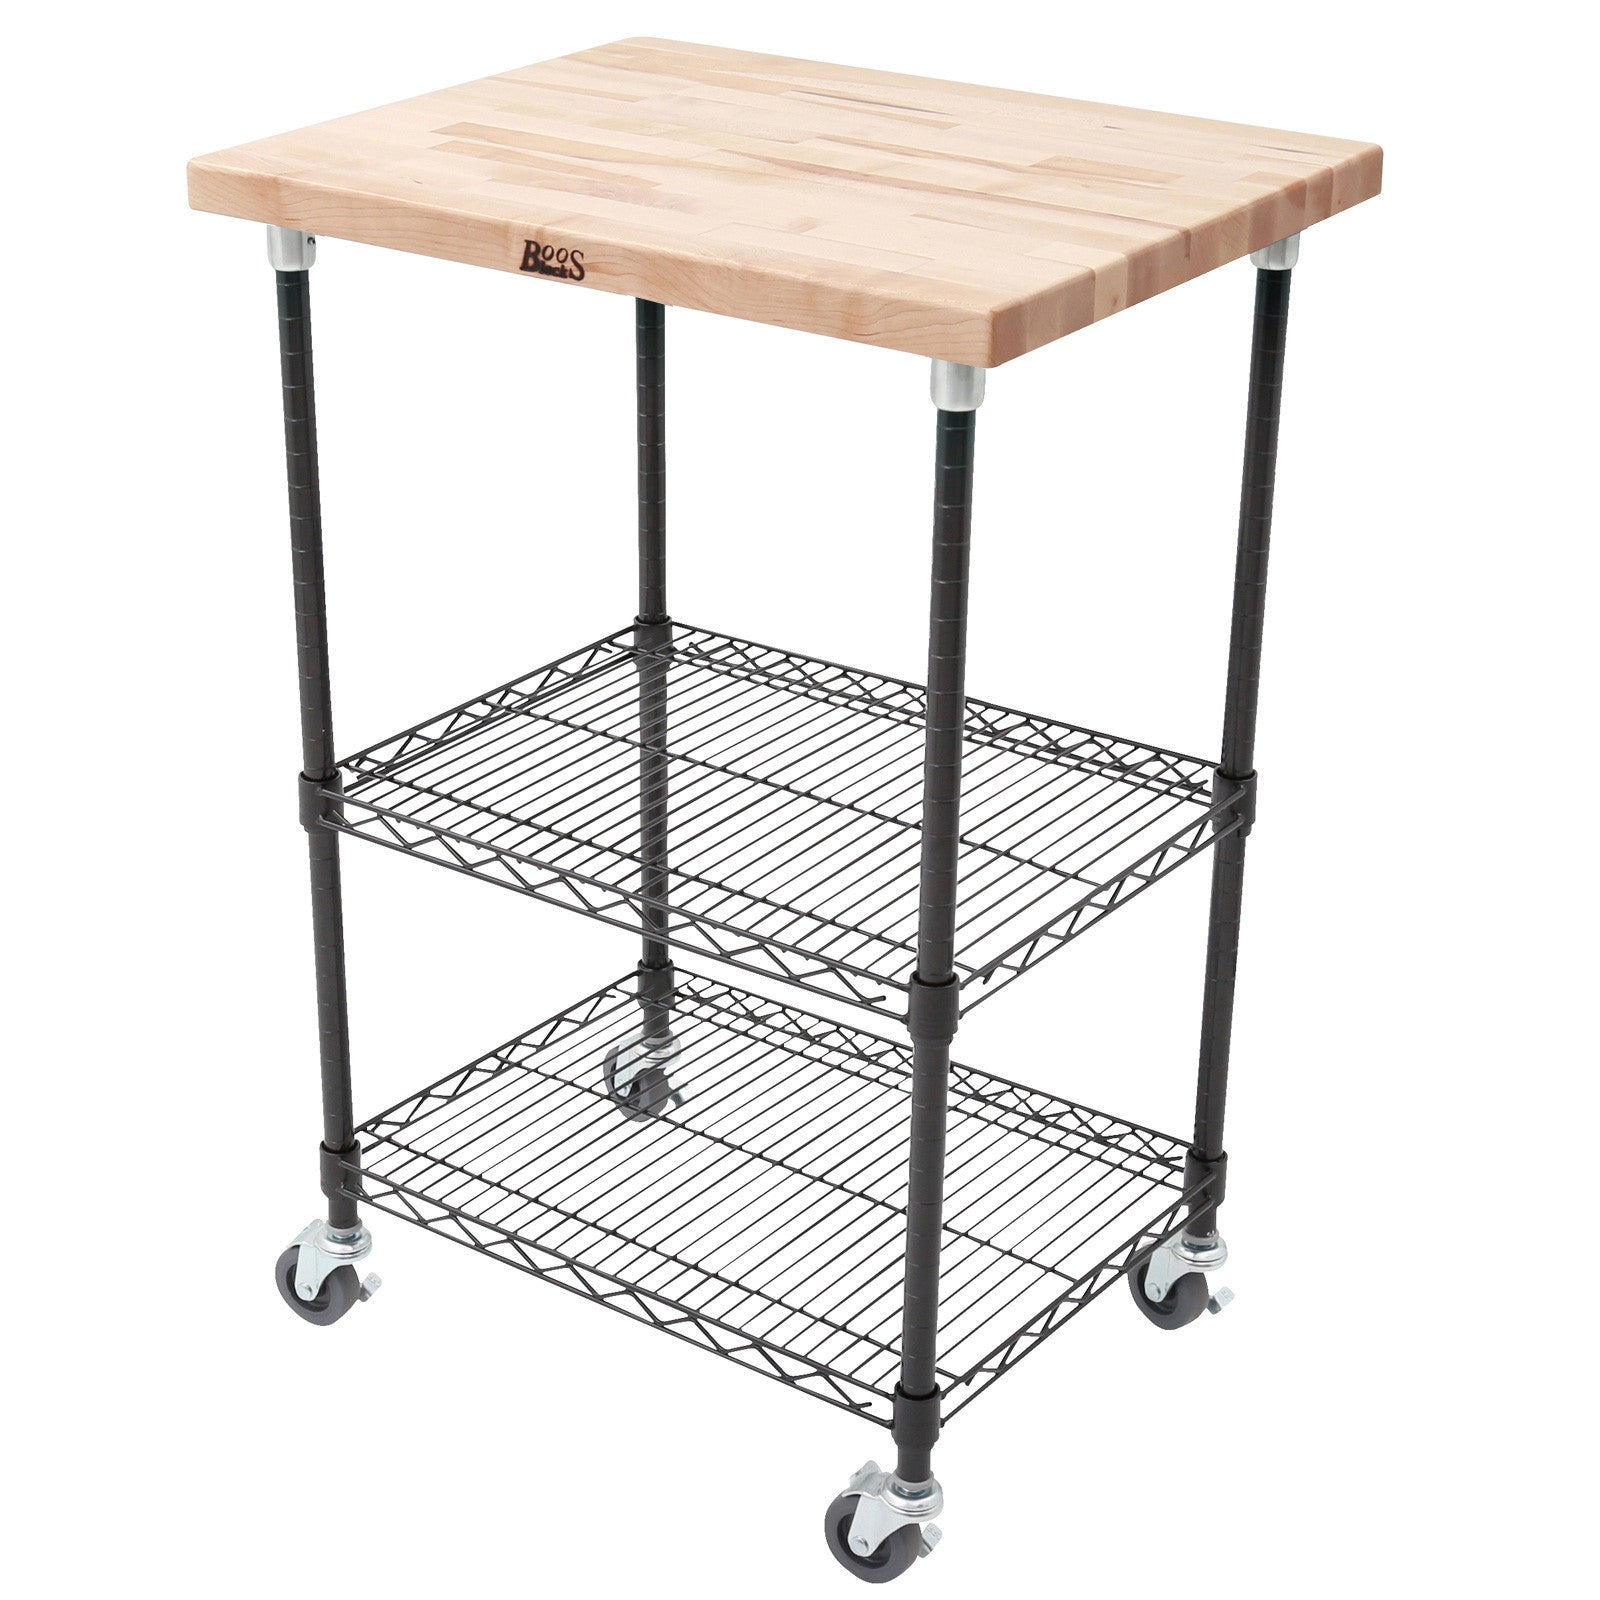 "John Boos MET-MWCK-1 1 1/2"" Maple Top Metro Cart - Black Base - 27 X 21 X 36"